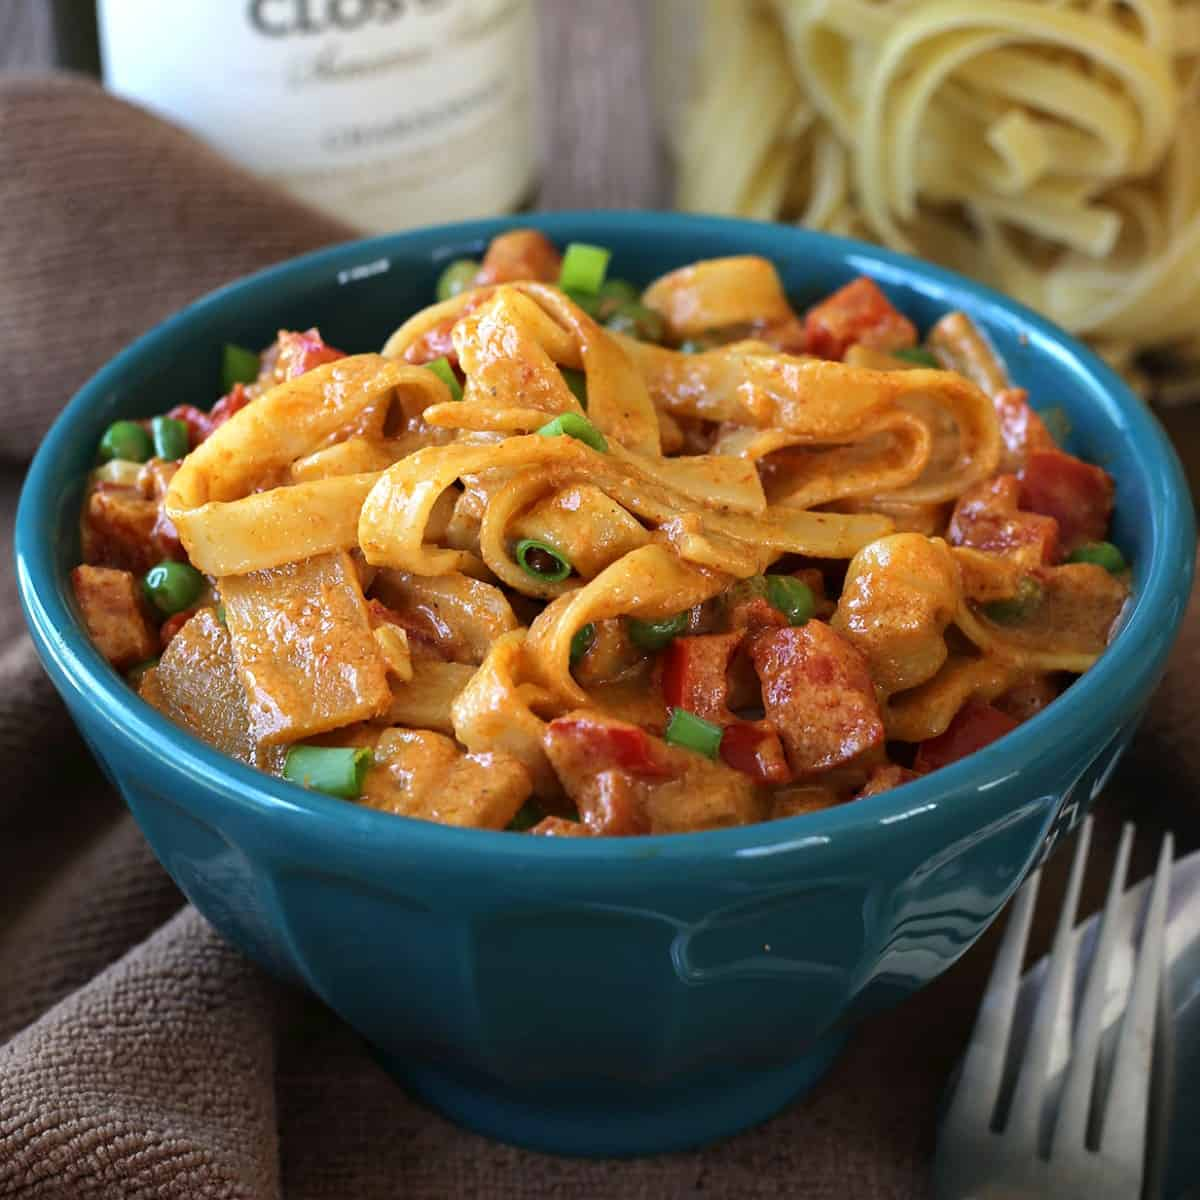 Creamy sauced Thai Curry Recipe in a turquoise bowl.